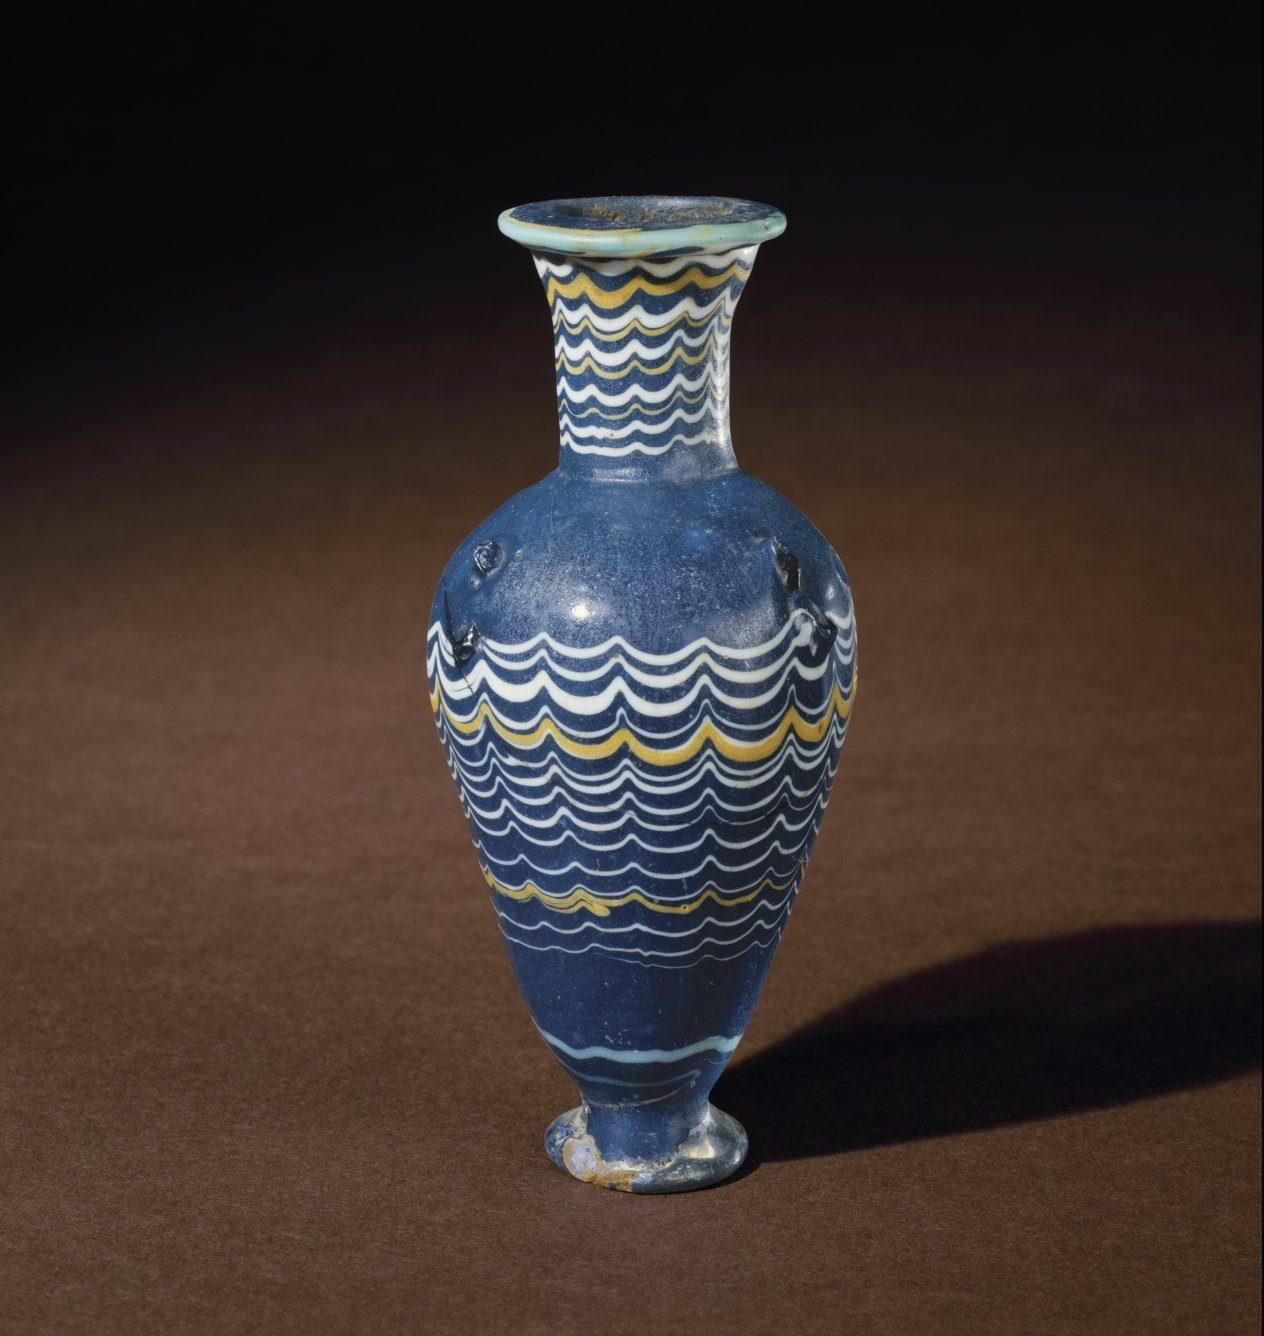 Bottle, Egypt, 1400-1360 BC, 50.1.1.